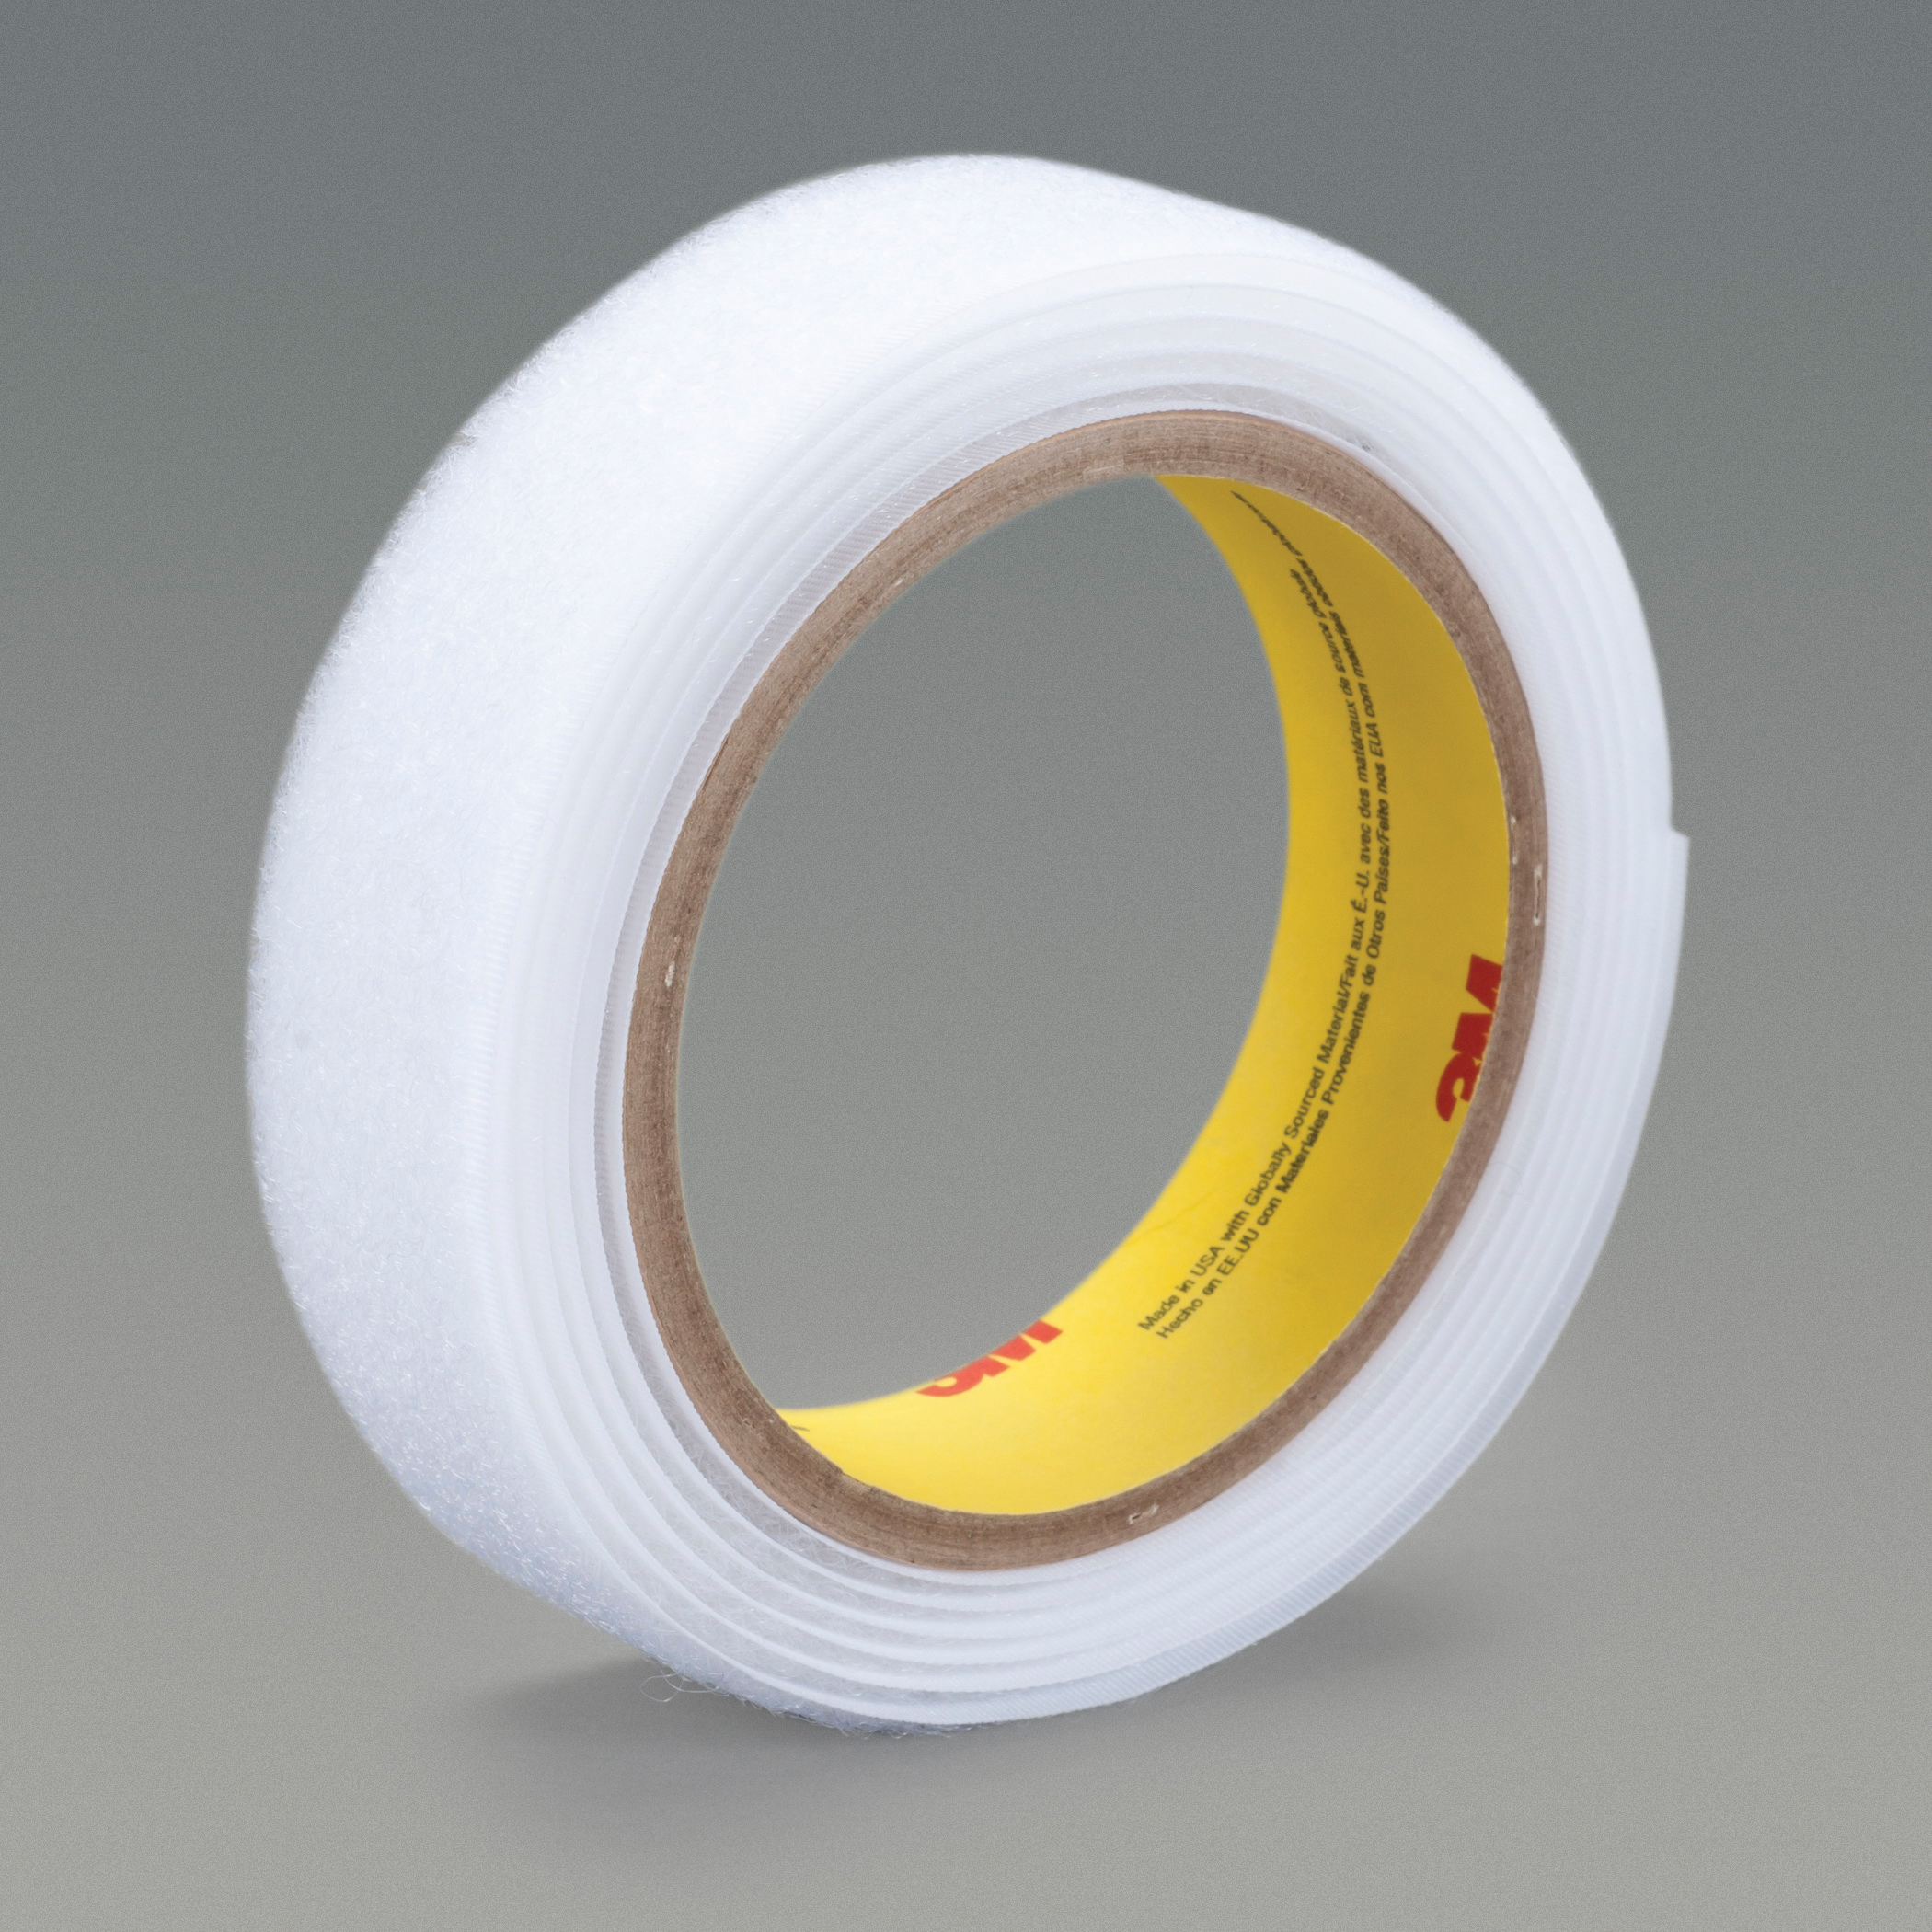 3M™ 021200-44812 Reclosable Hook Fastener Tape, 50 yd L x 3/4 in W, 0.15 in THK Engaged, Acrylic Adhesive, Woven Nylon Backing, White